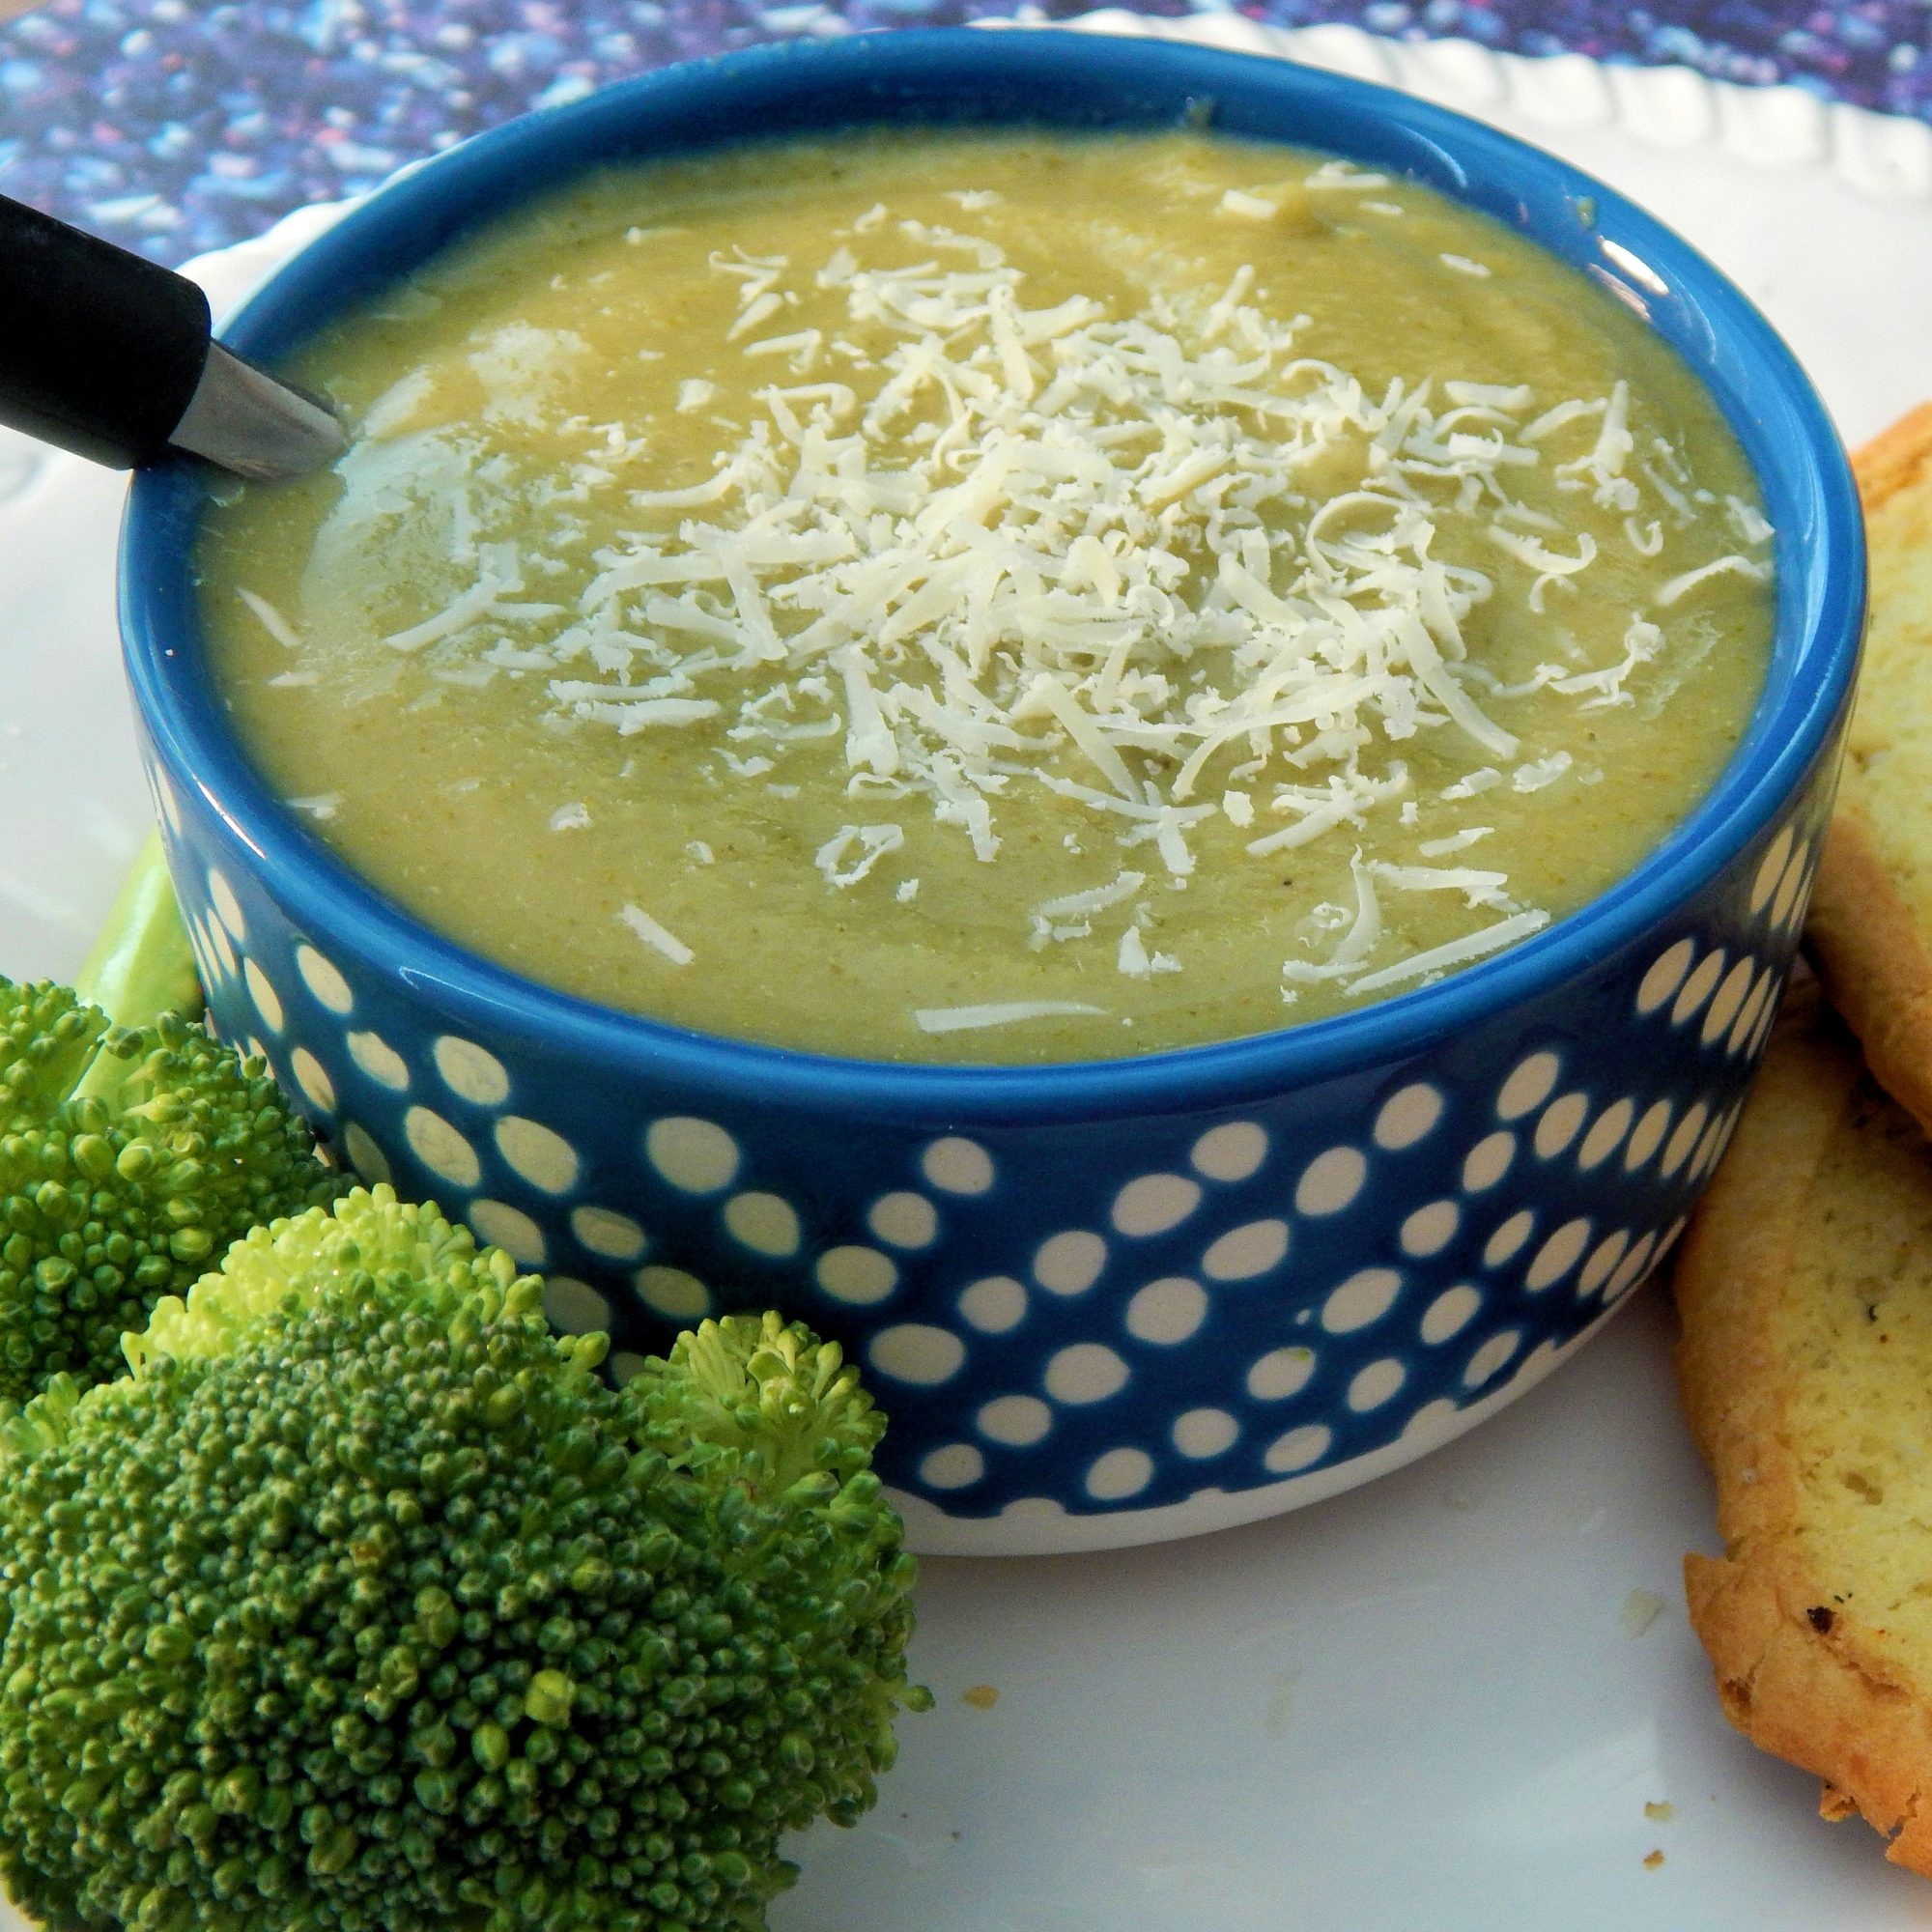 a blue bowl with broccoli soup and broccoli on the side